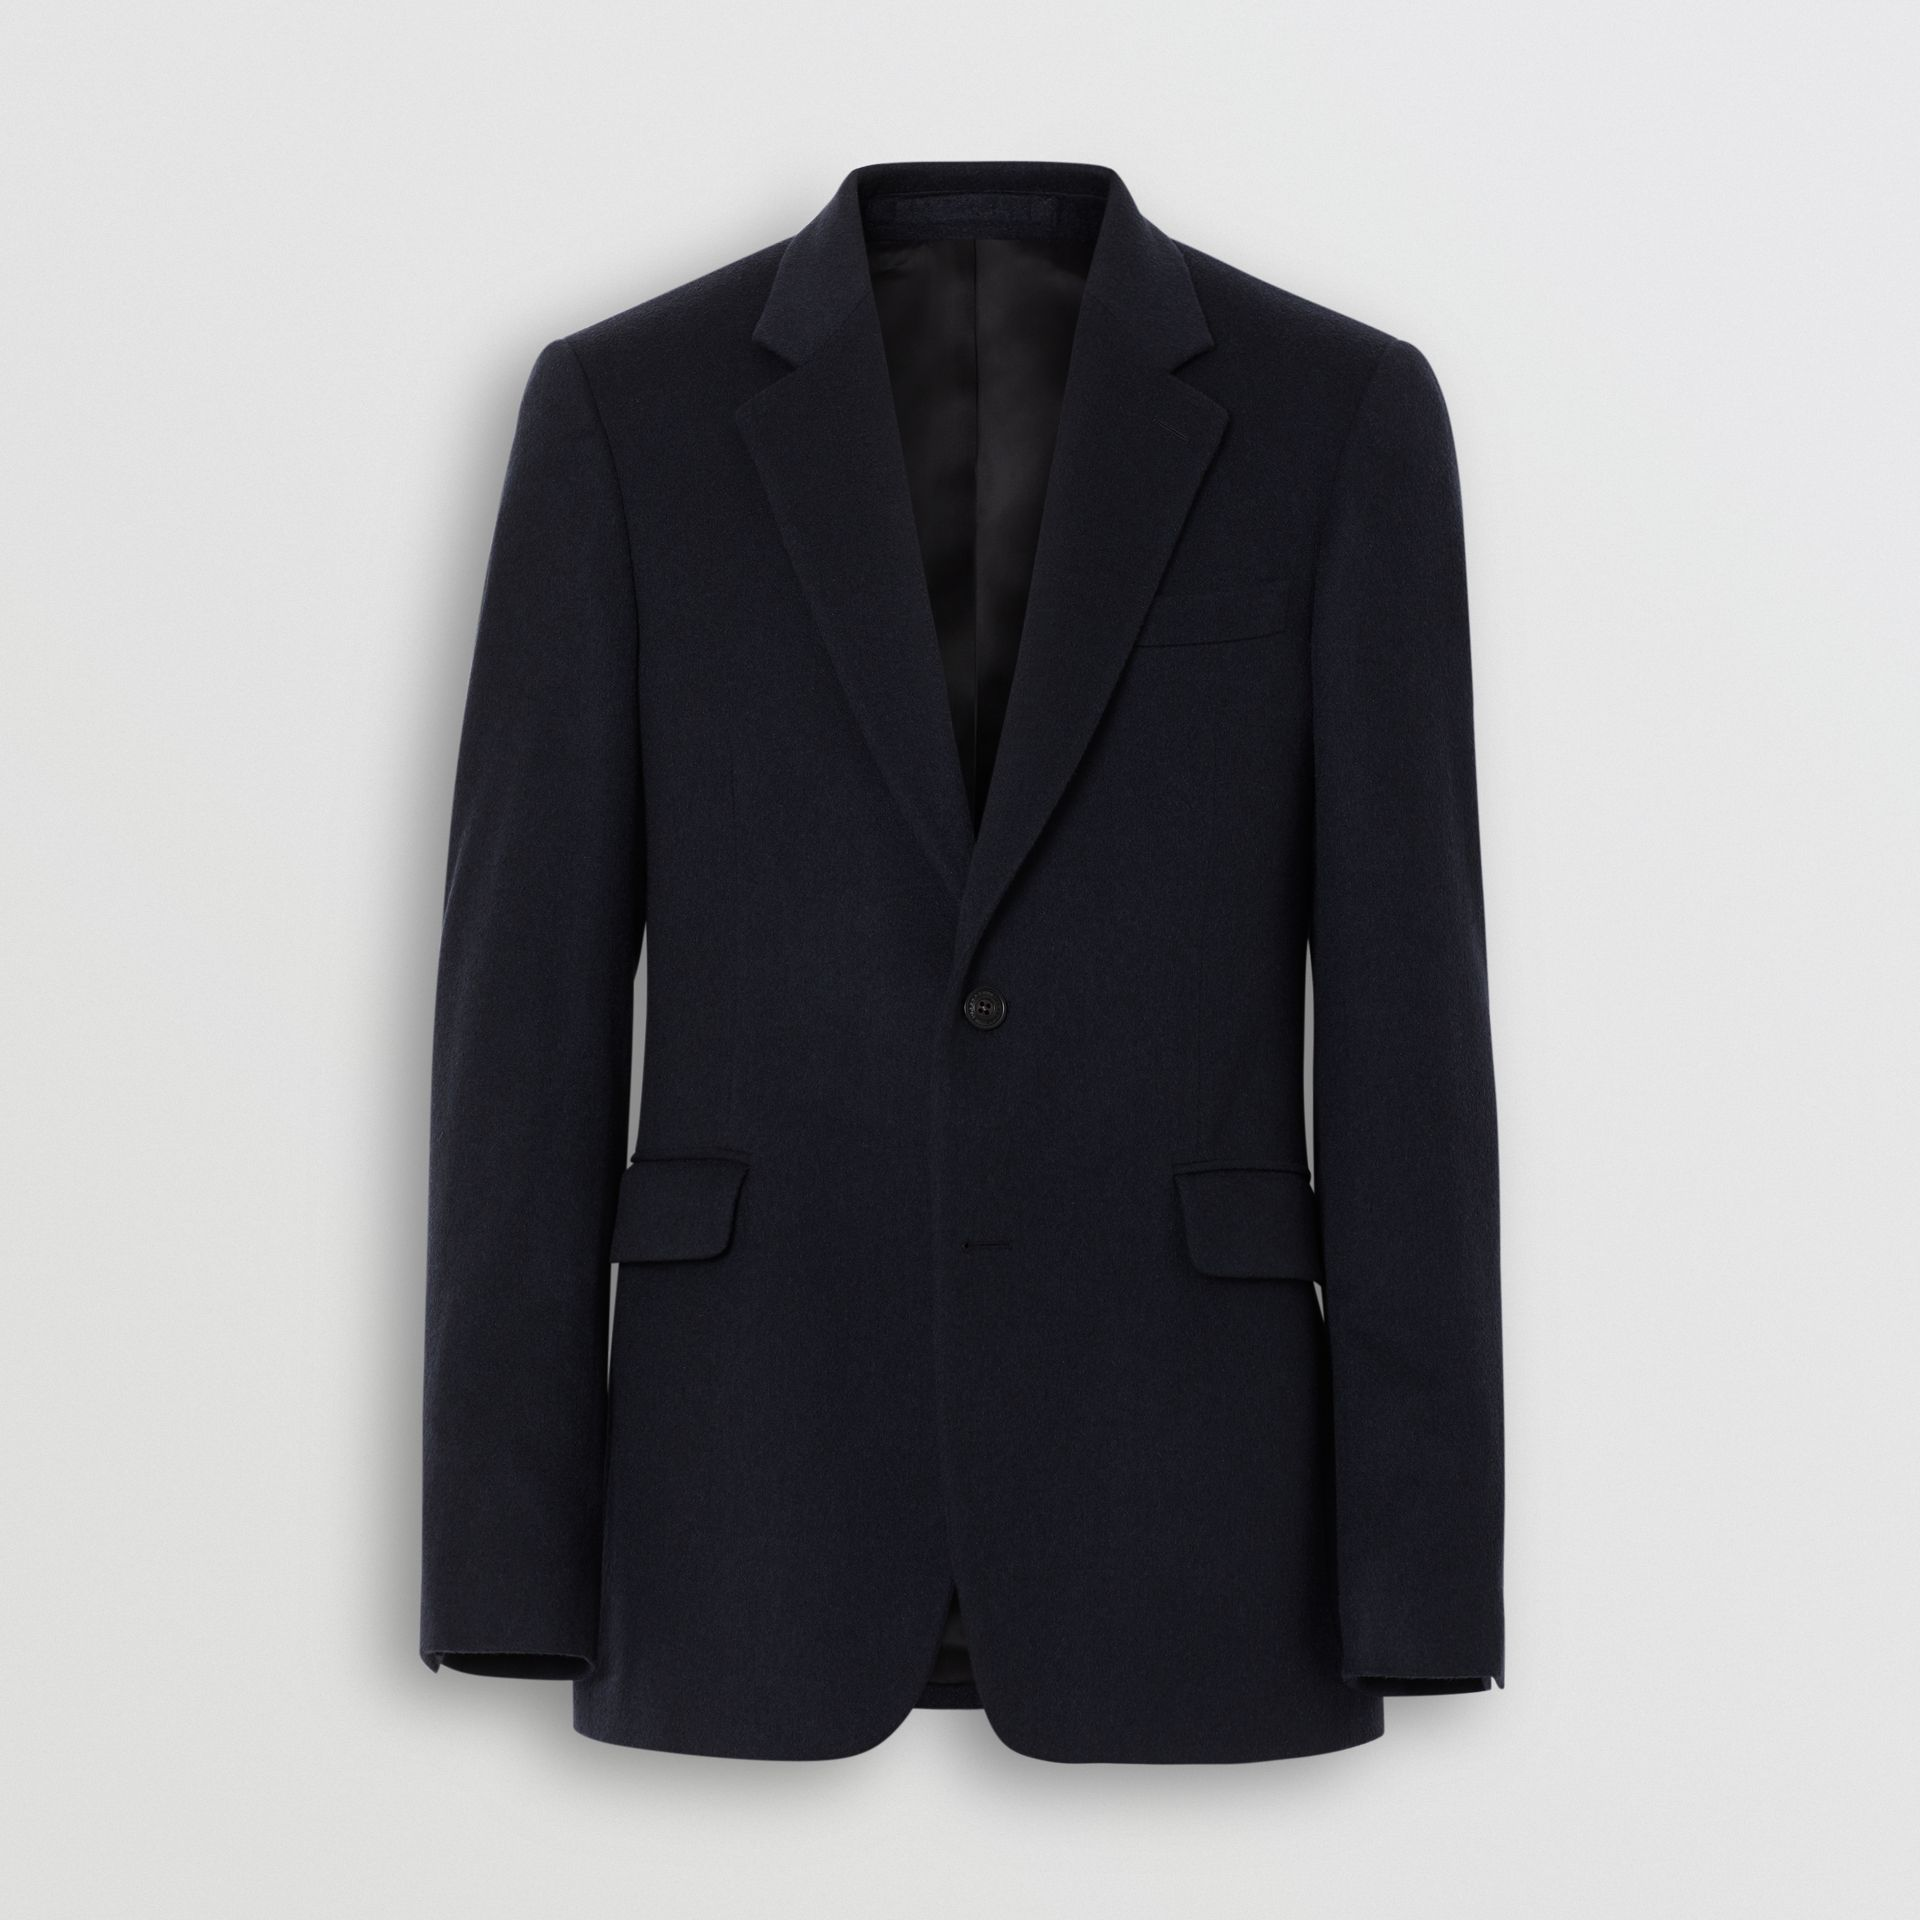 Classic Fit Cashmere Tailored Jacket in Navy Melange - Men | Burberry - gallery image 3